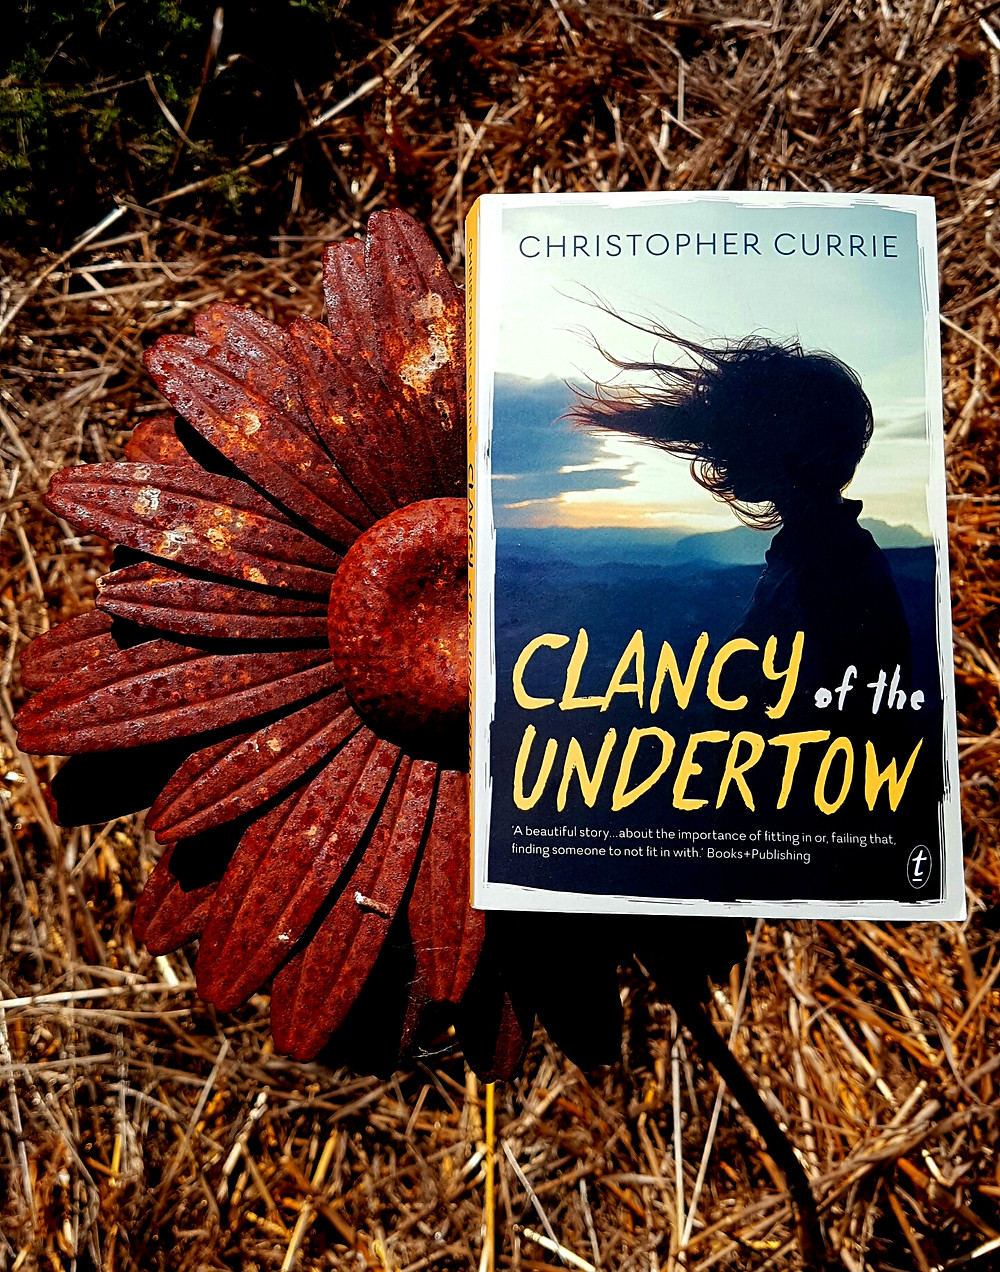 Photo of Clancy of the Undertow, Christopher Currie.